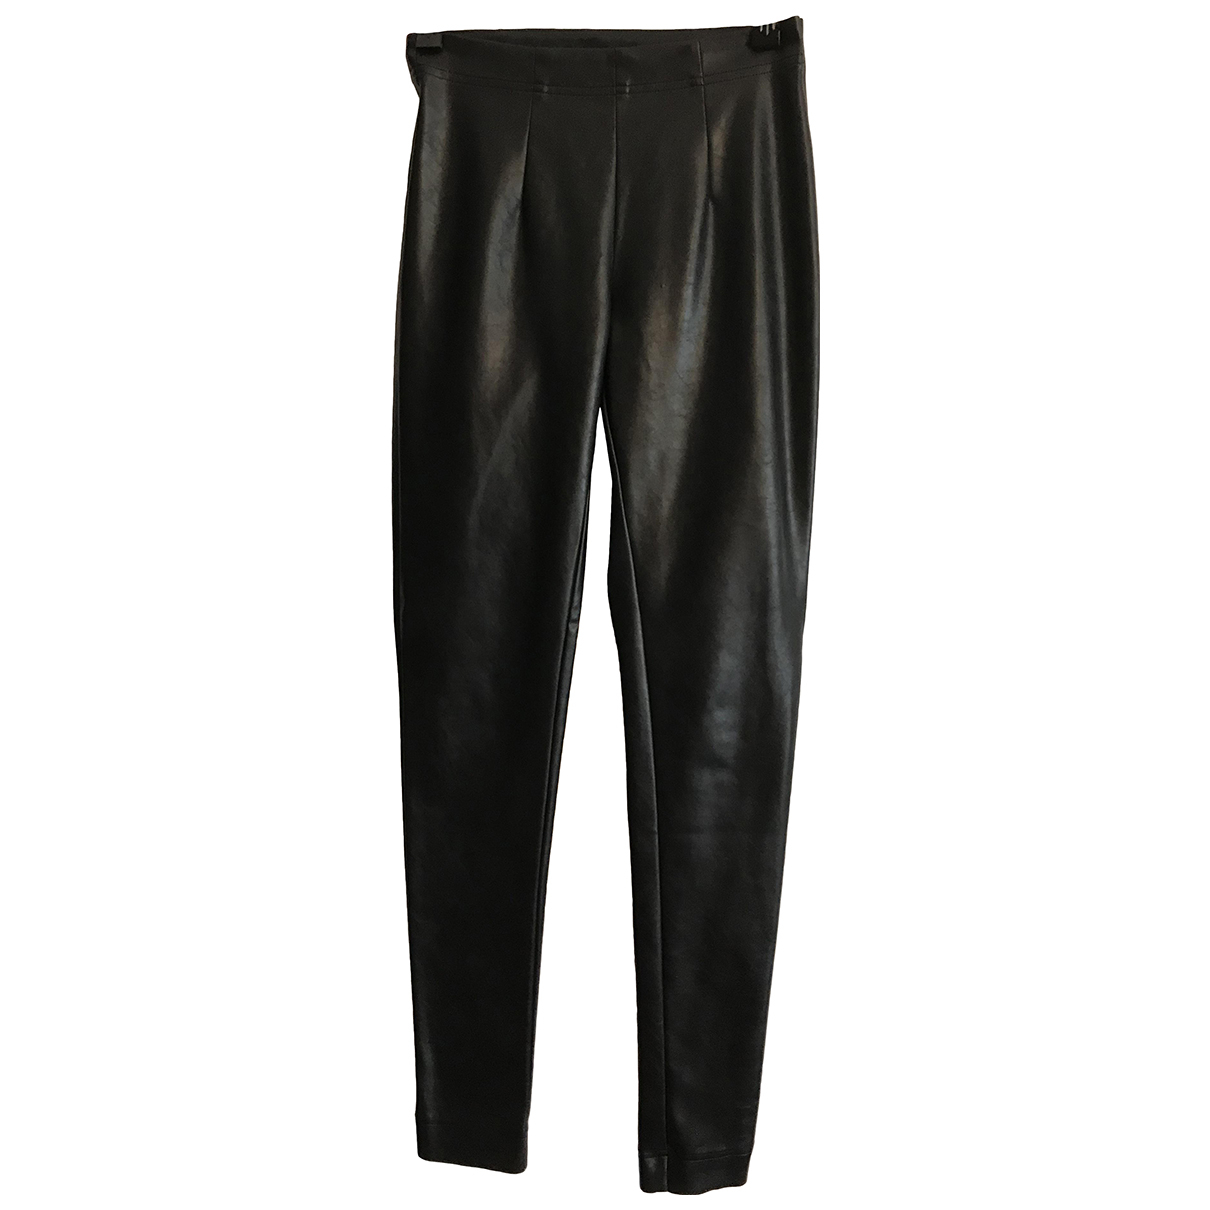 Autre Marque N Black Leather Trousers for Women XS International